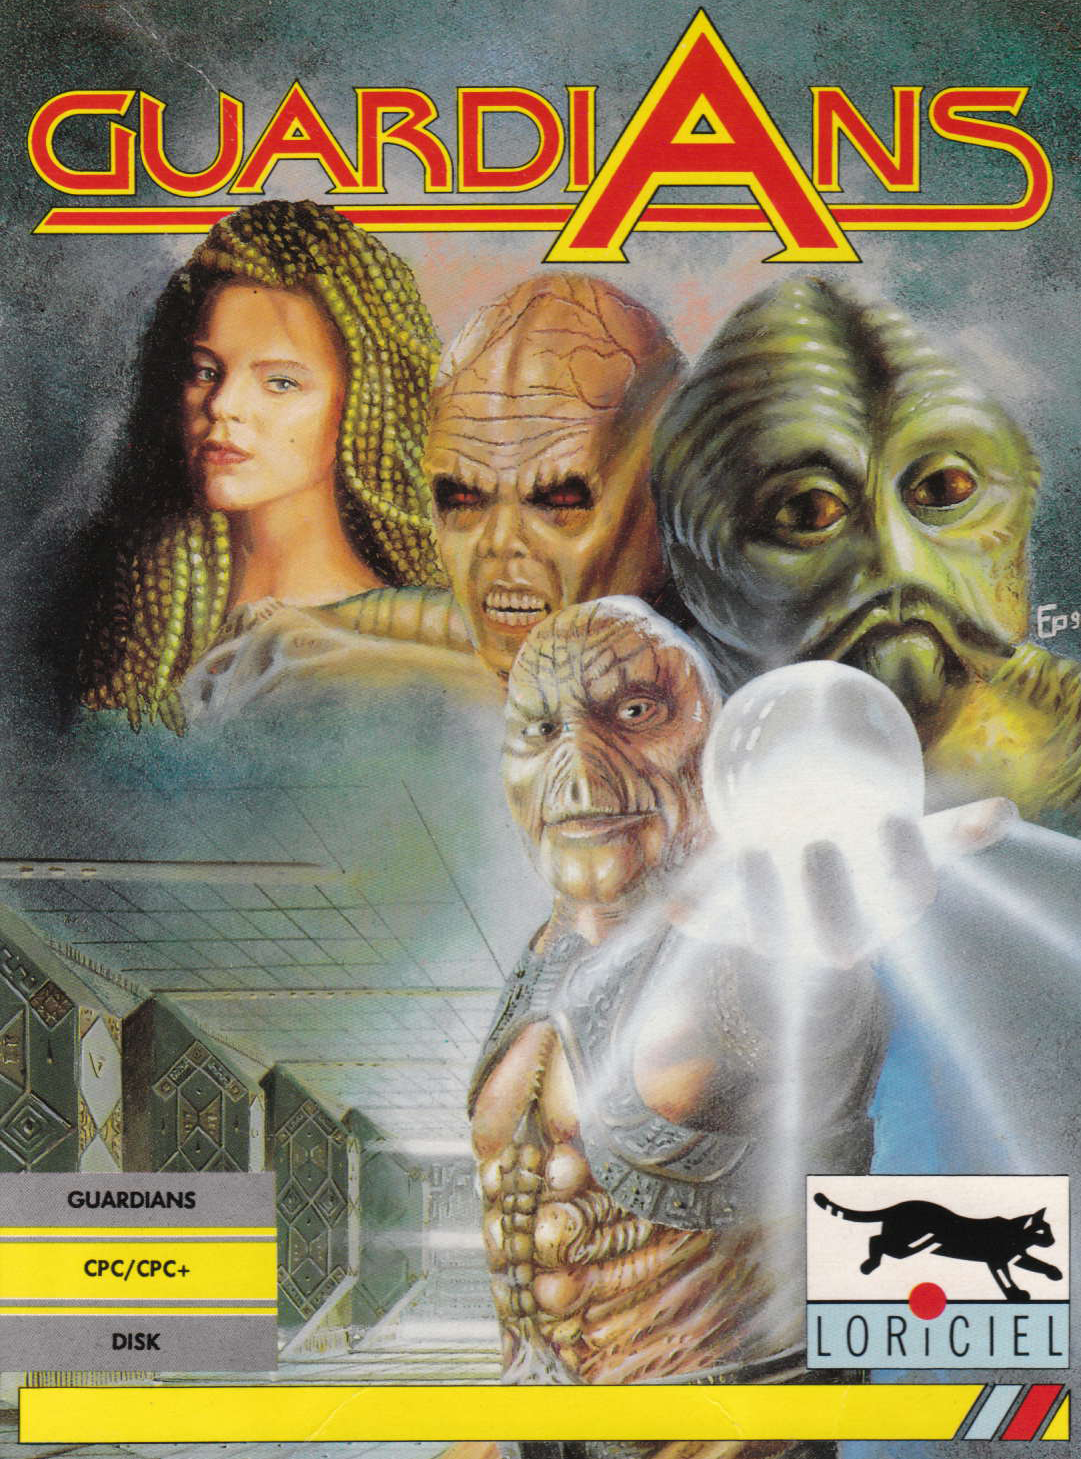 cover of the Amstrad CPC game Guardians  by GameBase CPC